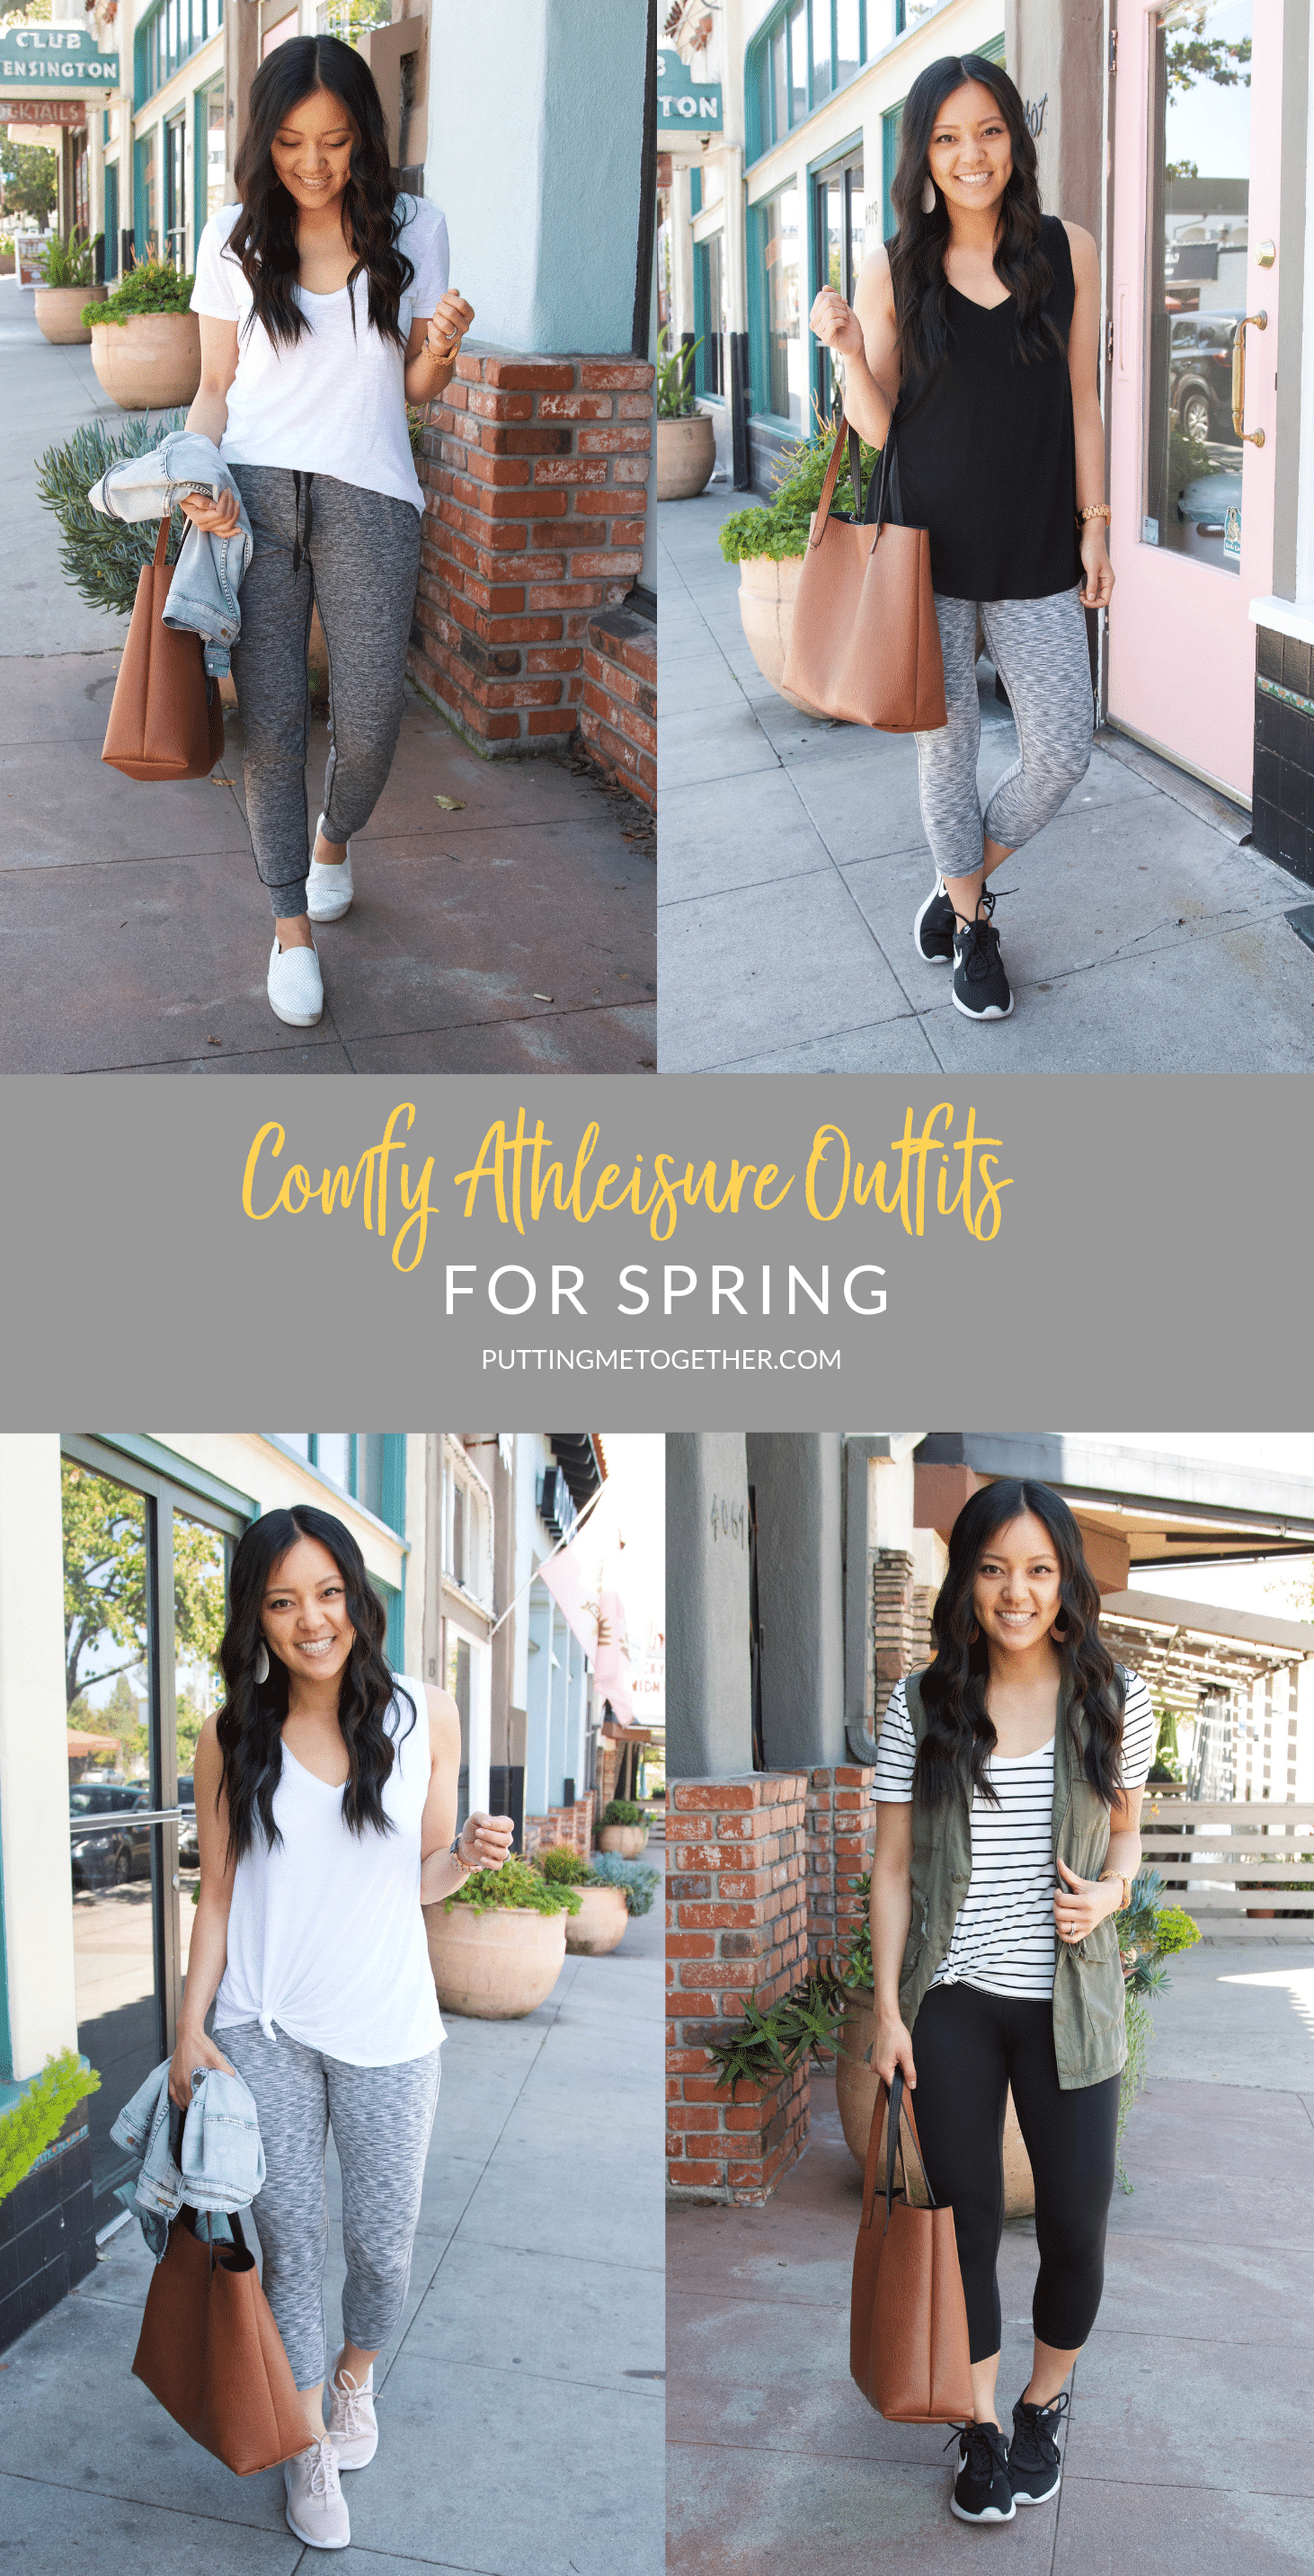 Comfy Athleisure Outfits for Spring